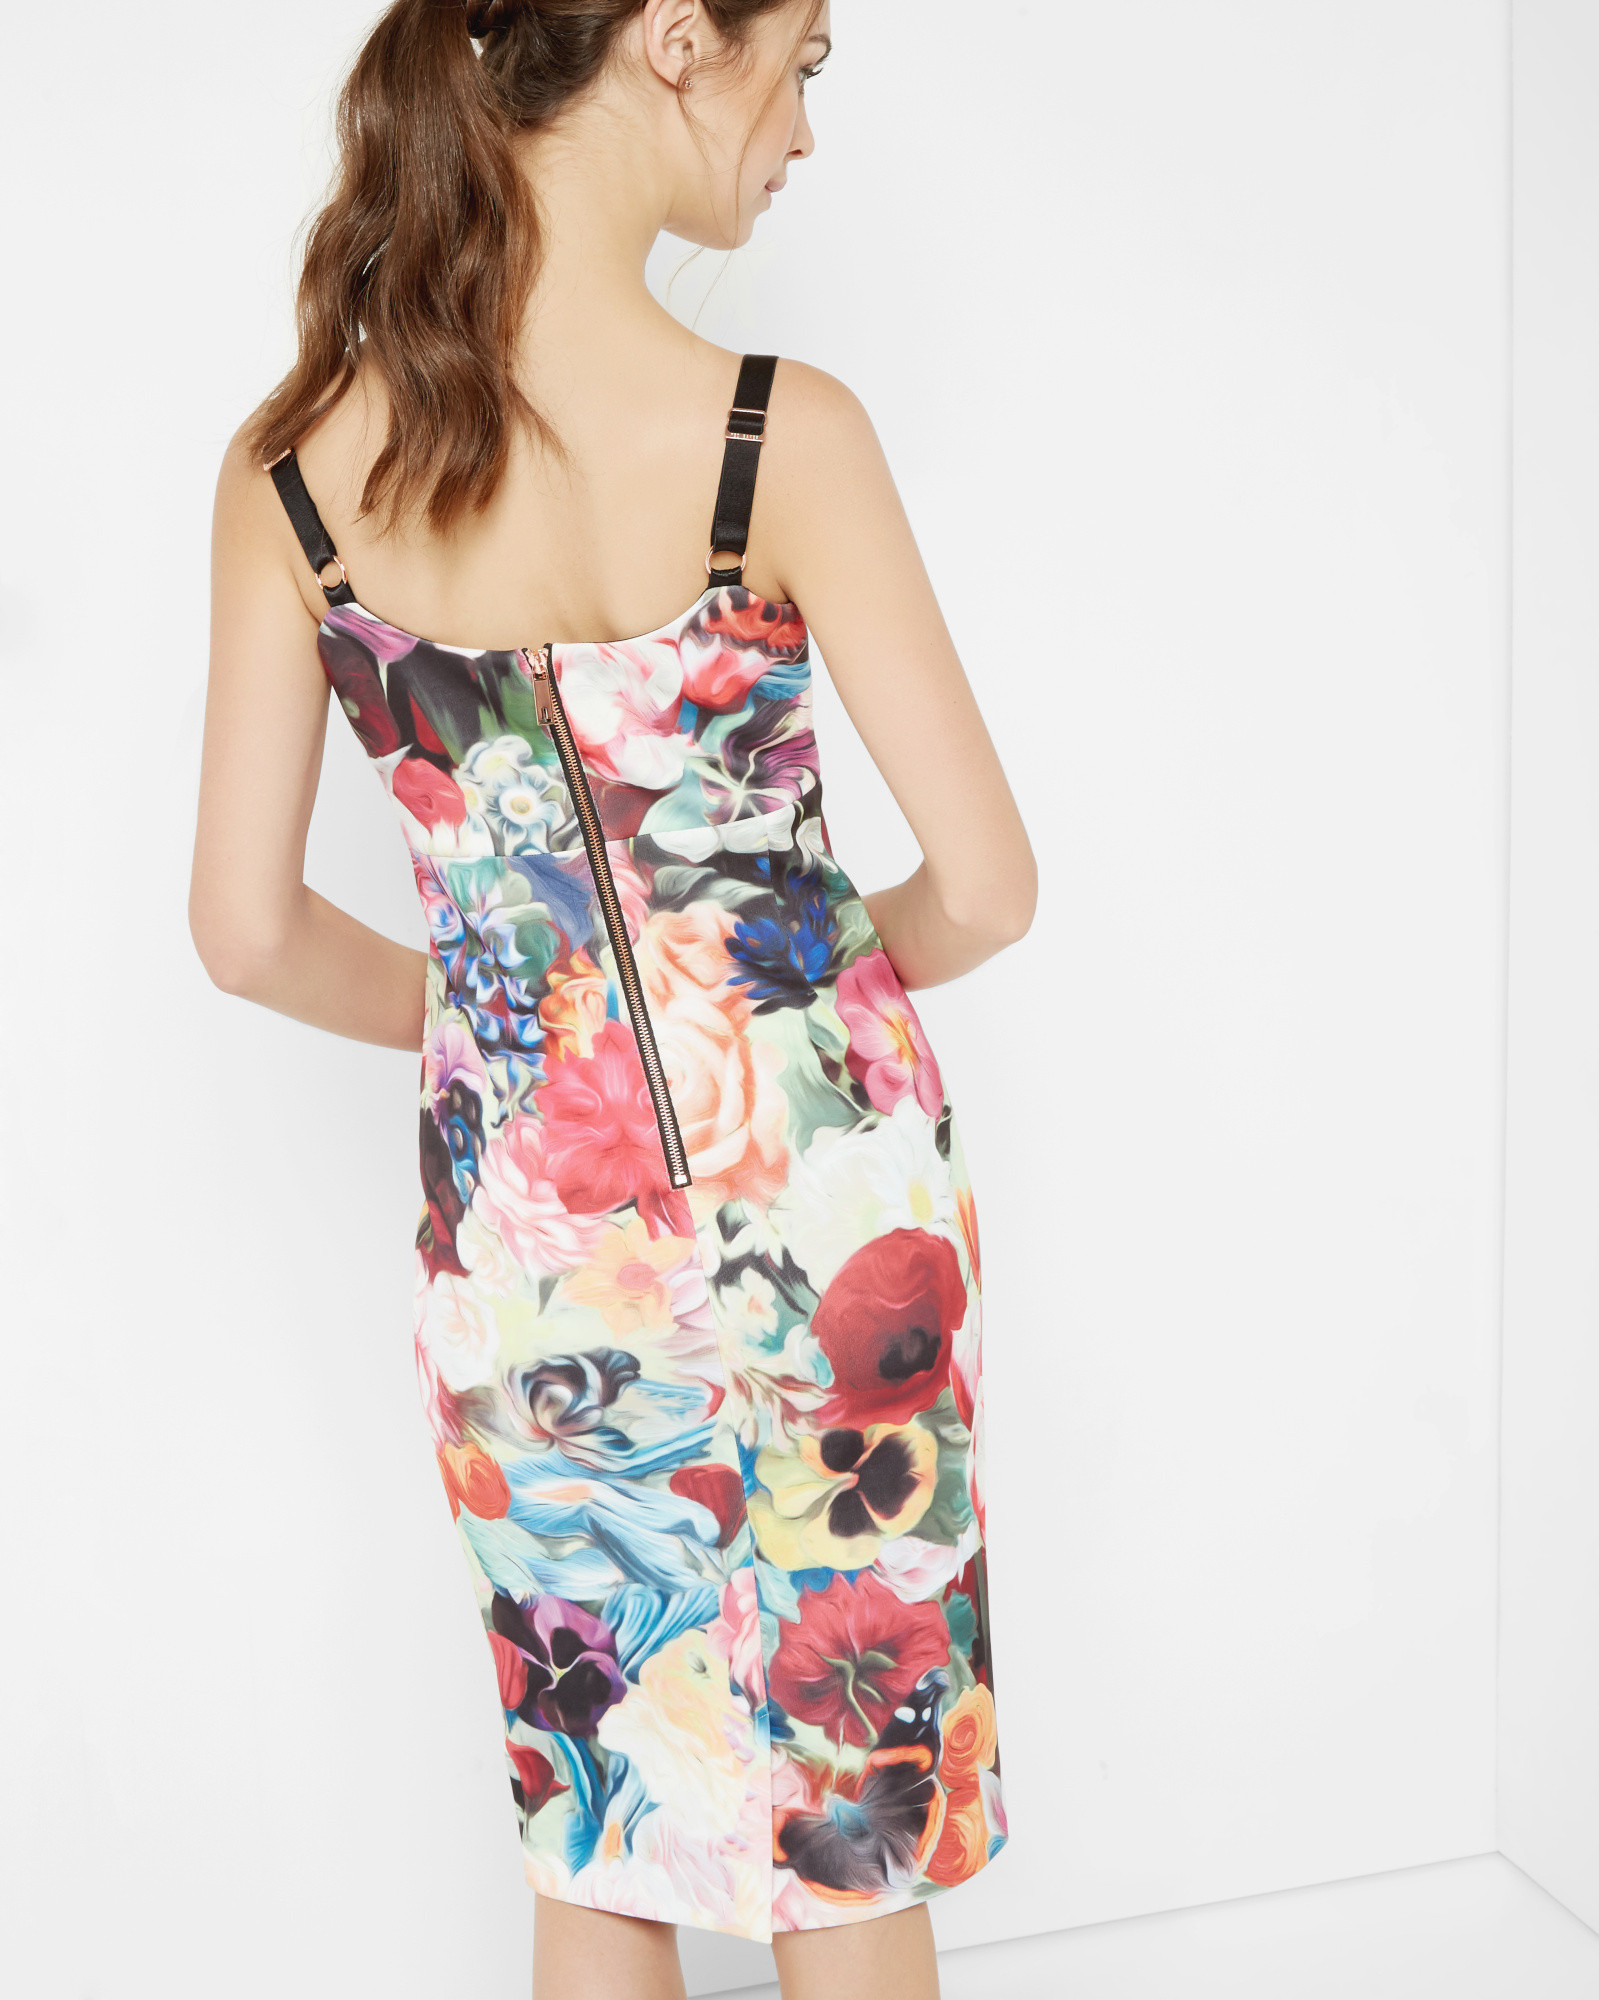 5679cda7cf76d Lyst - Ted Baker Floral Swirl Strappy Dress